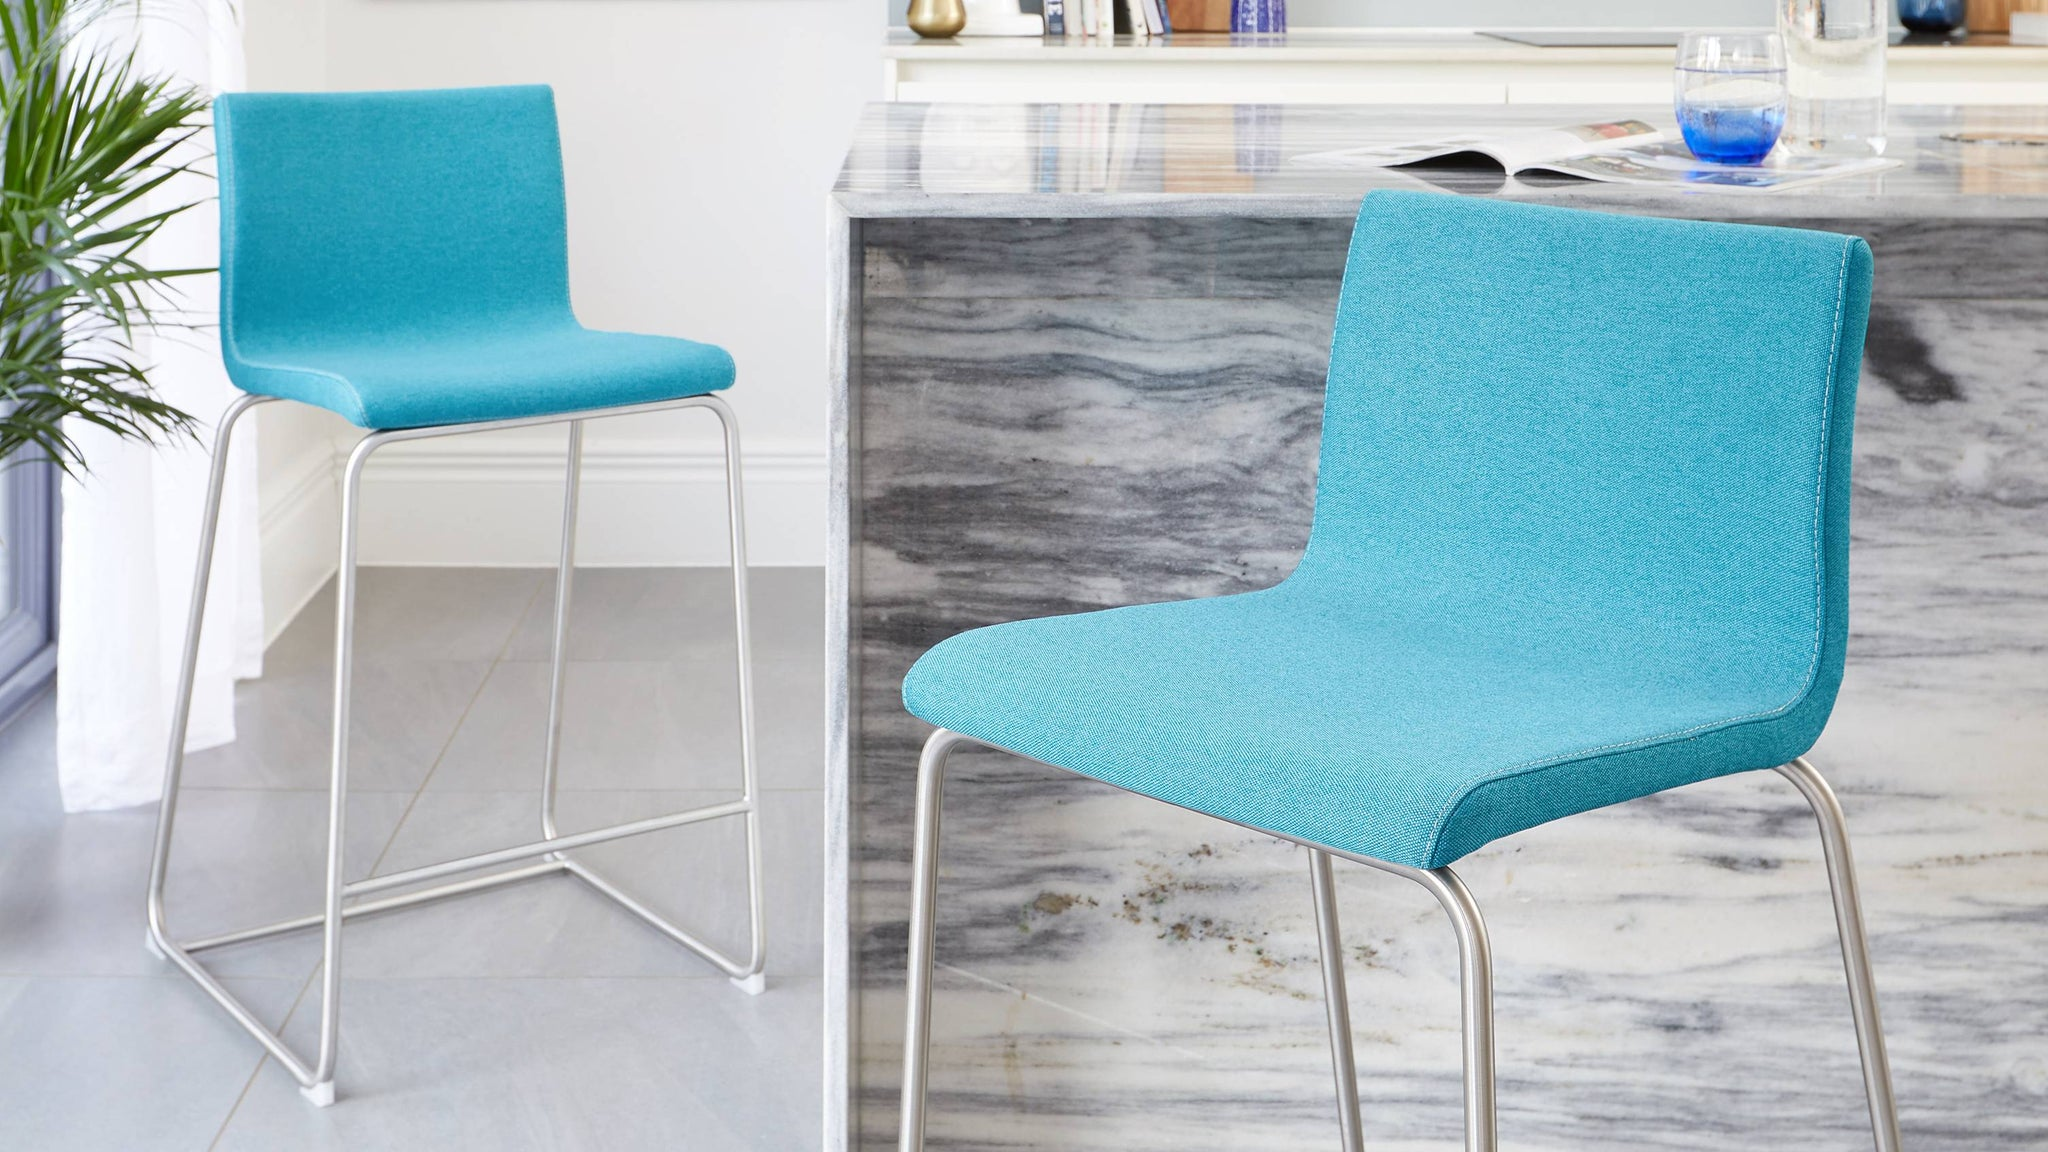 Comfortable fabric bar stools